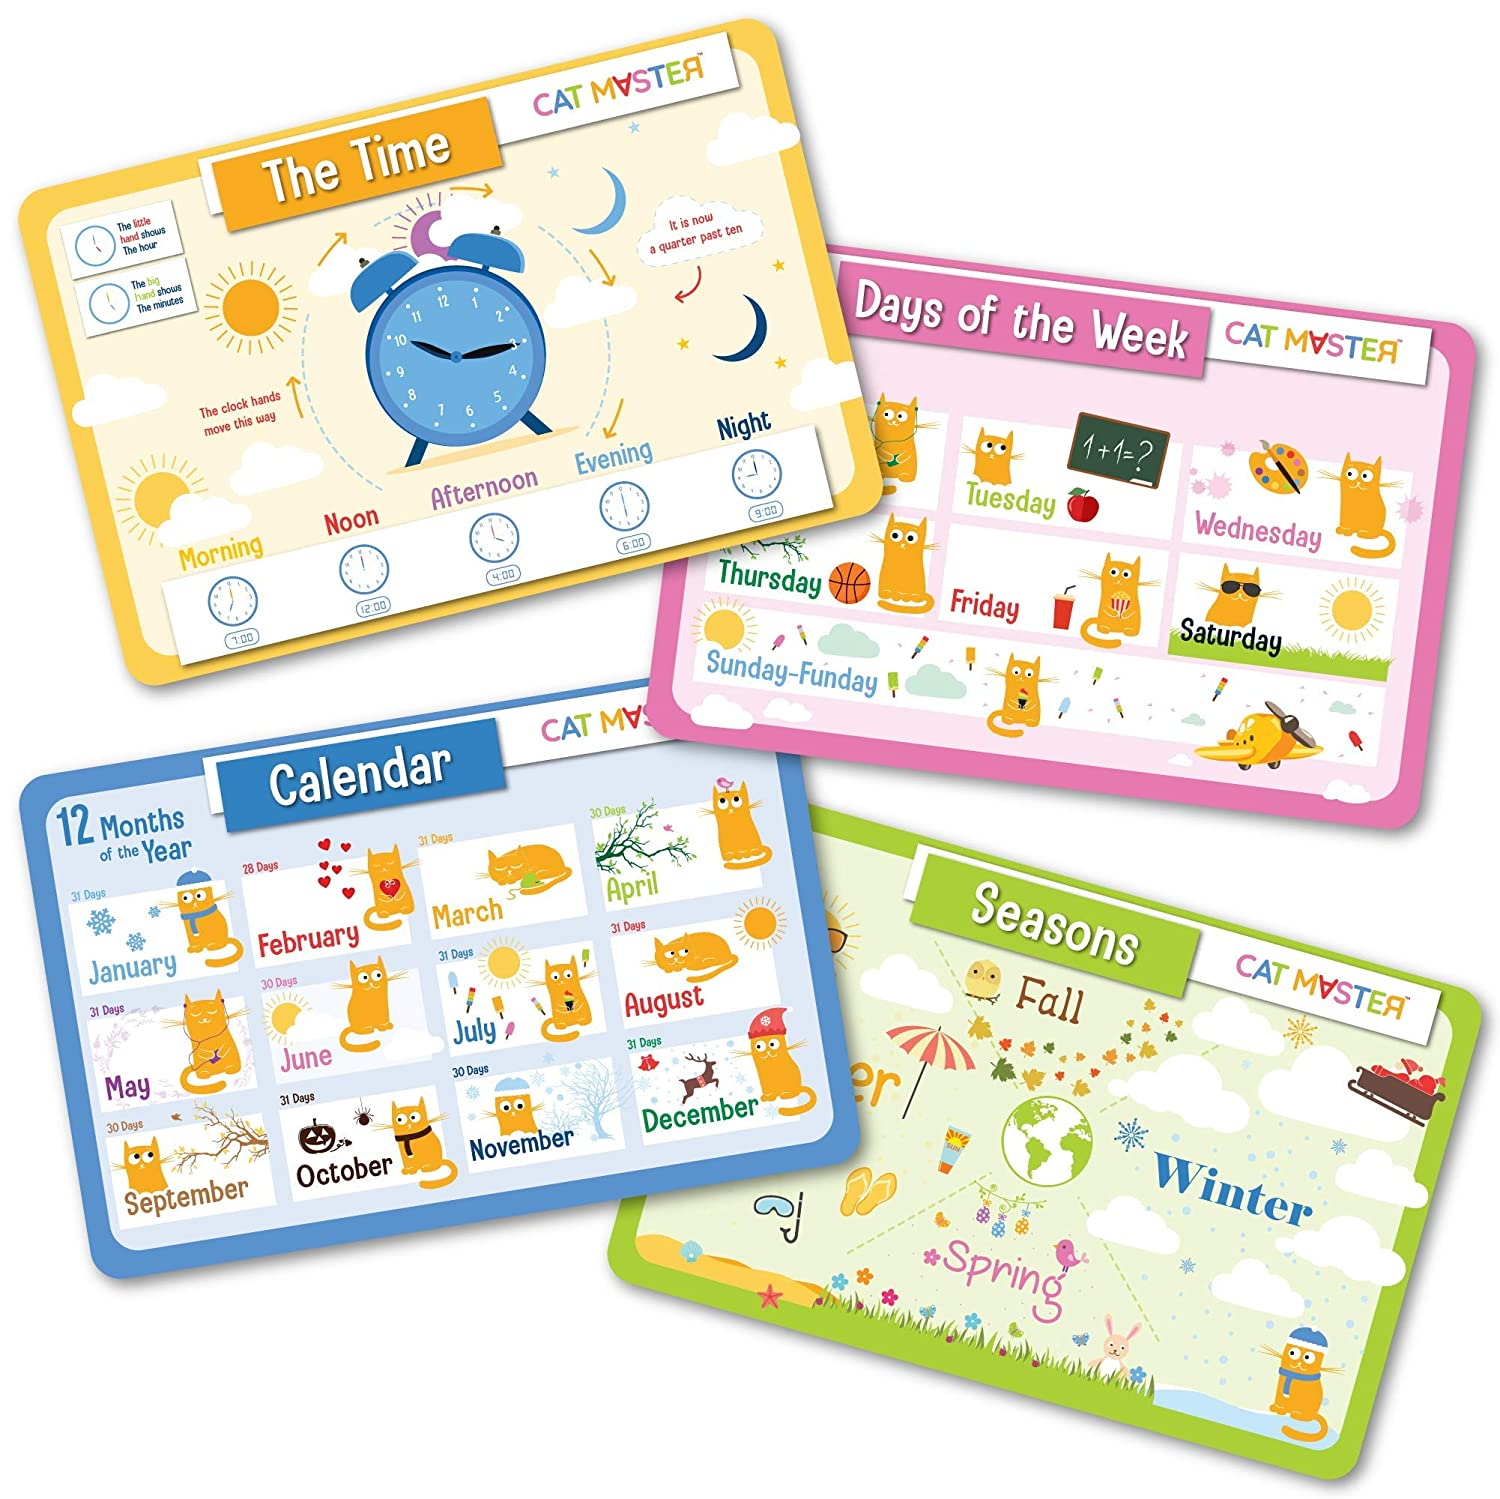 Cat Master – Educational Kids Placemats - Set of 4, Learn Months, Days, Seasons and How to Read the Clock - Fun Learning Time